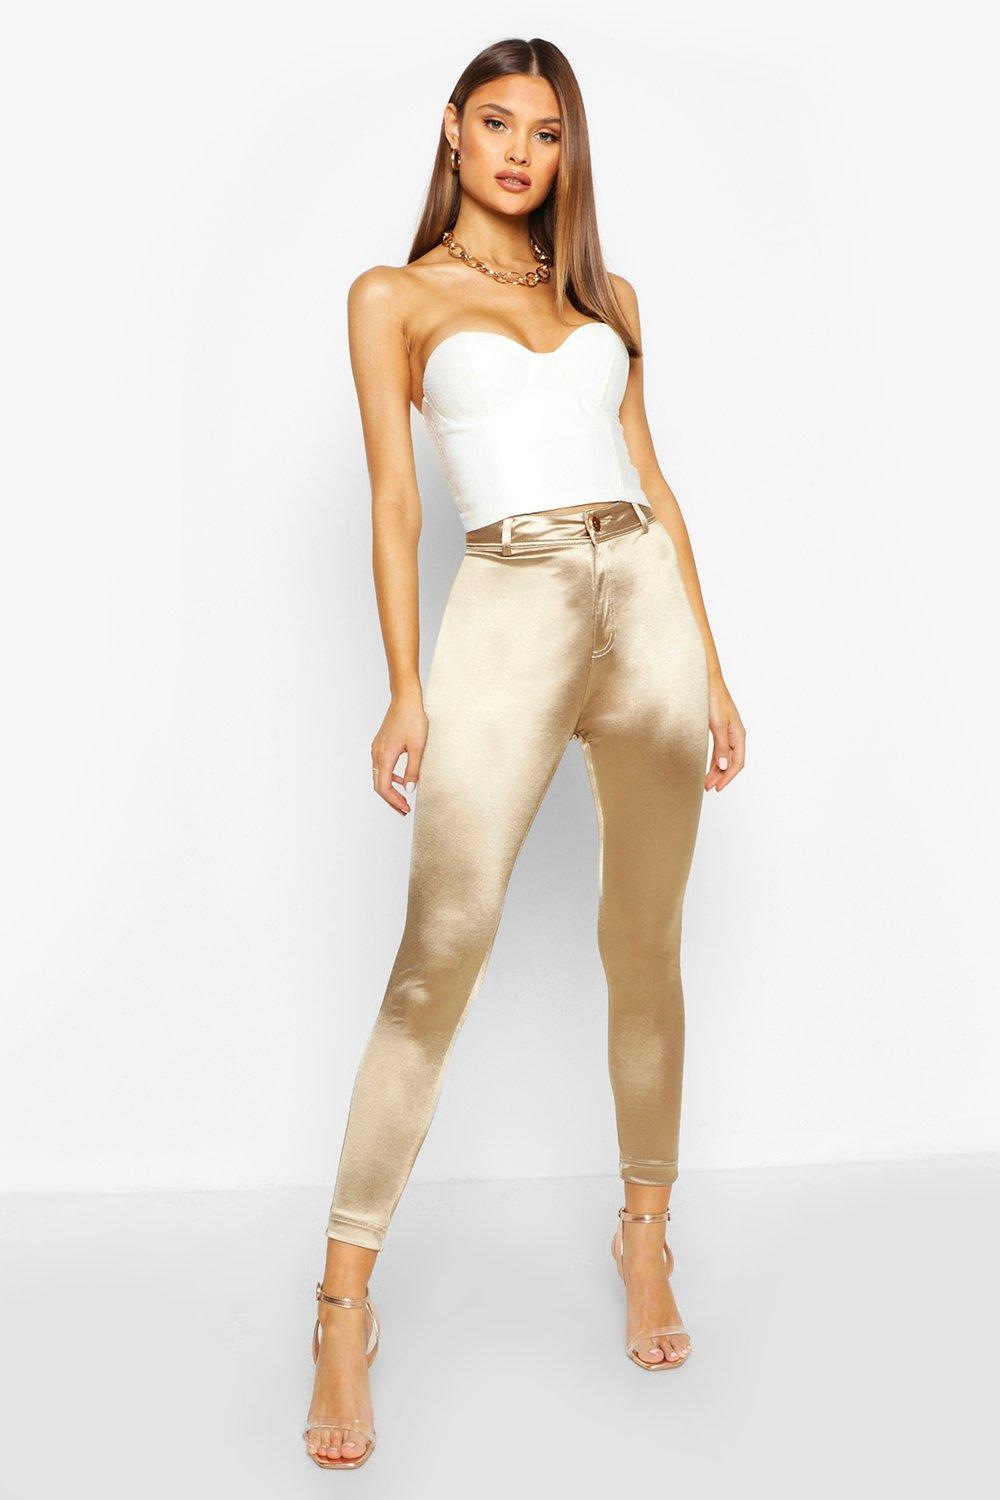 Vintage High Waisted Trousers, Sailor Pants, Jeans High Waisted Disco Trousers $46.00 AT vintagedancer.com